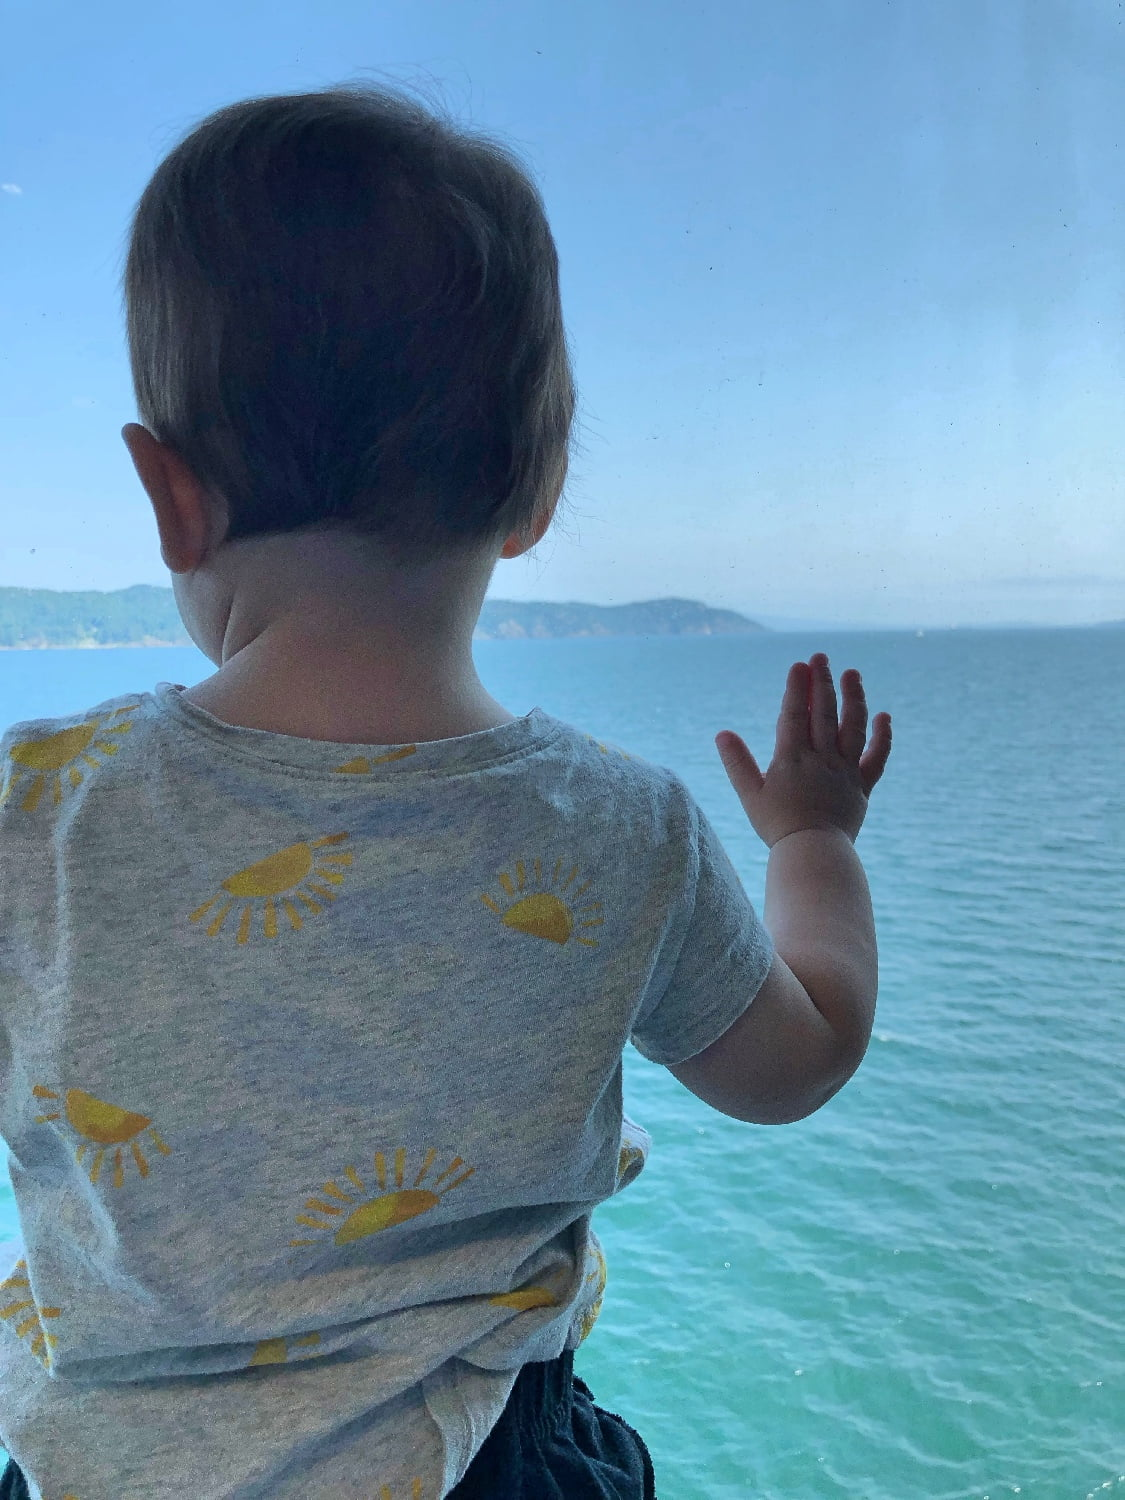 Toddler on BC Ferry Looking at Ocean